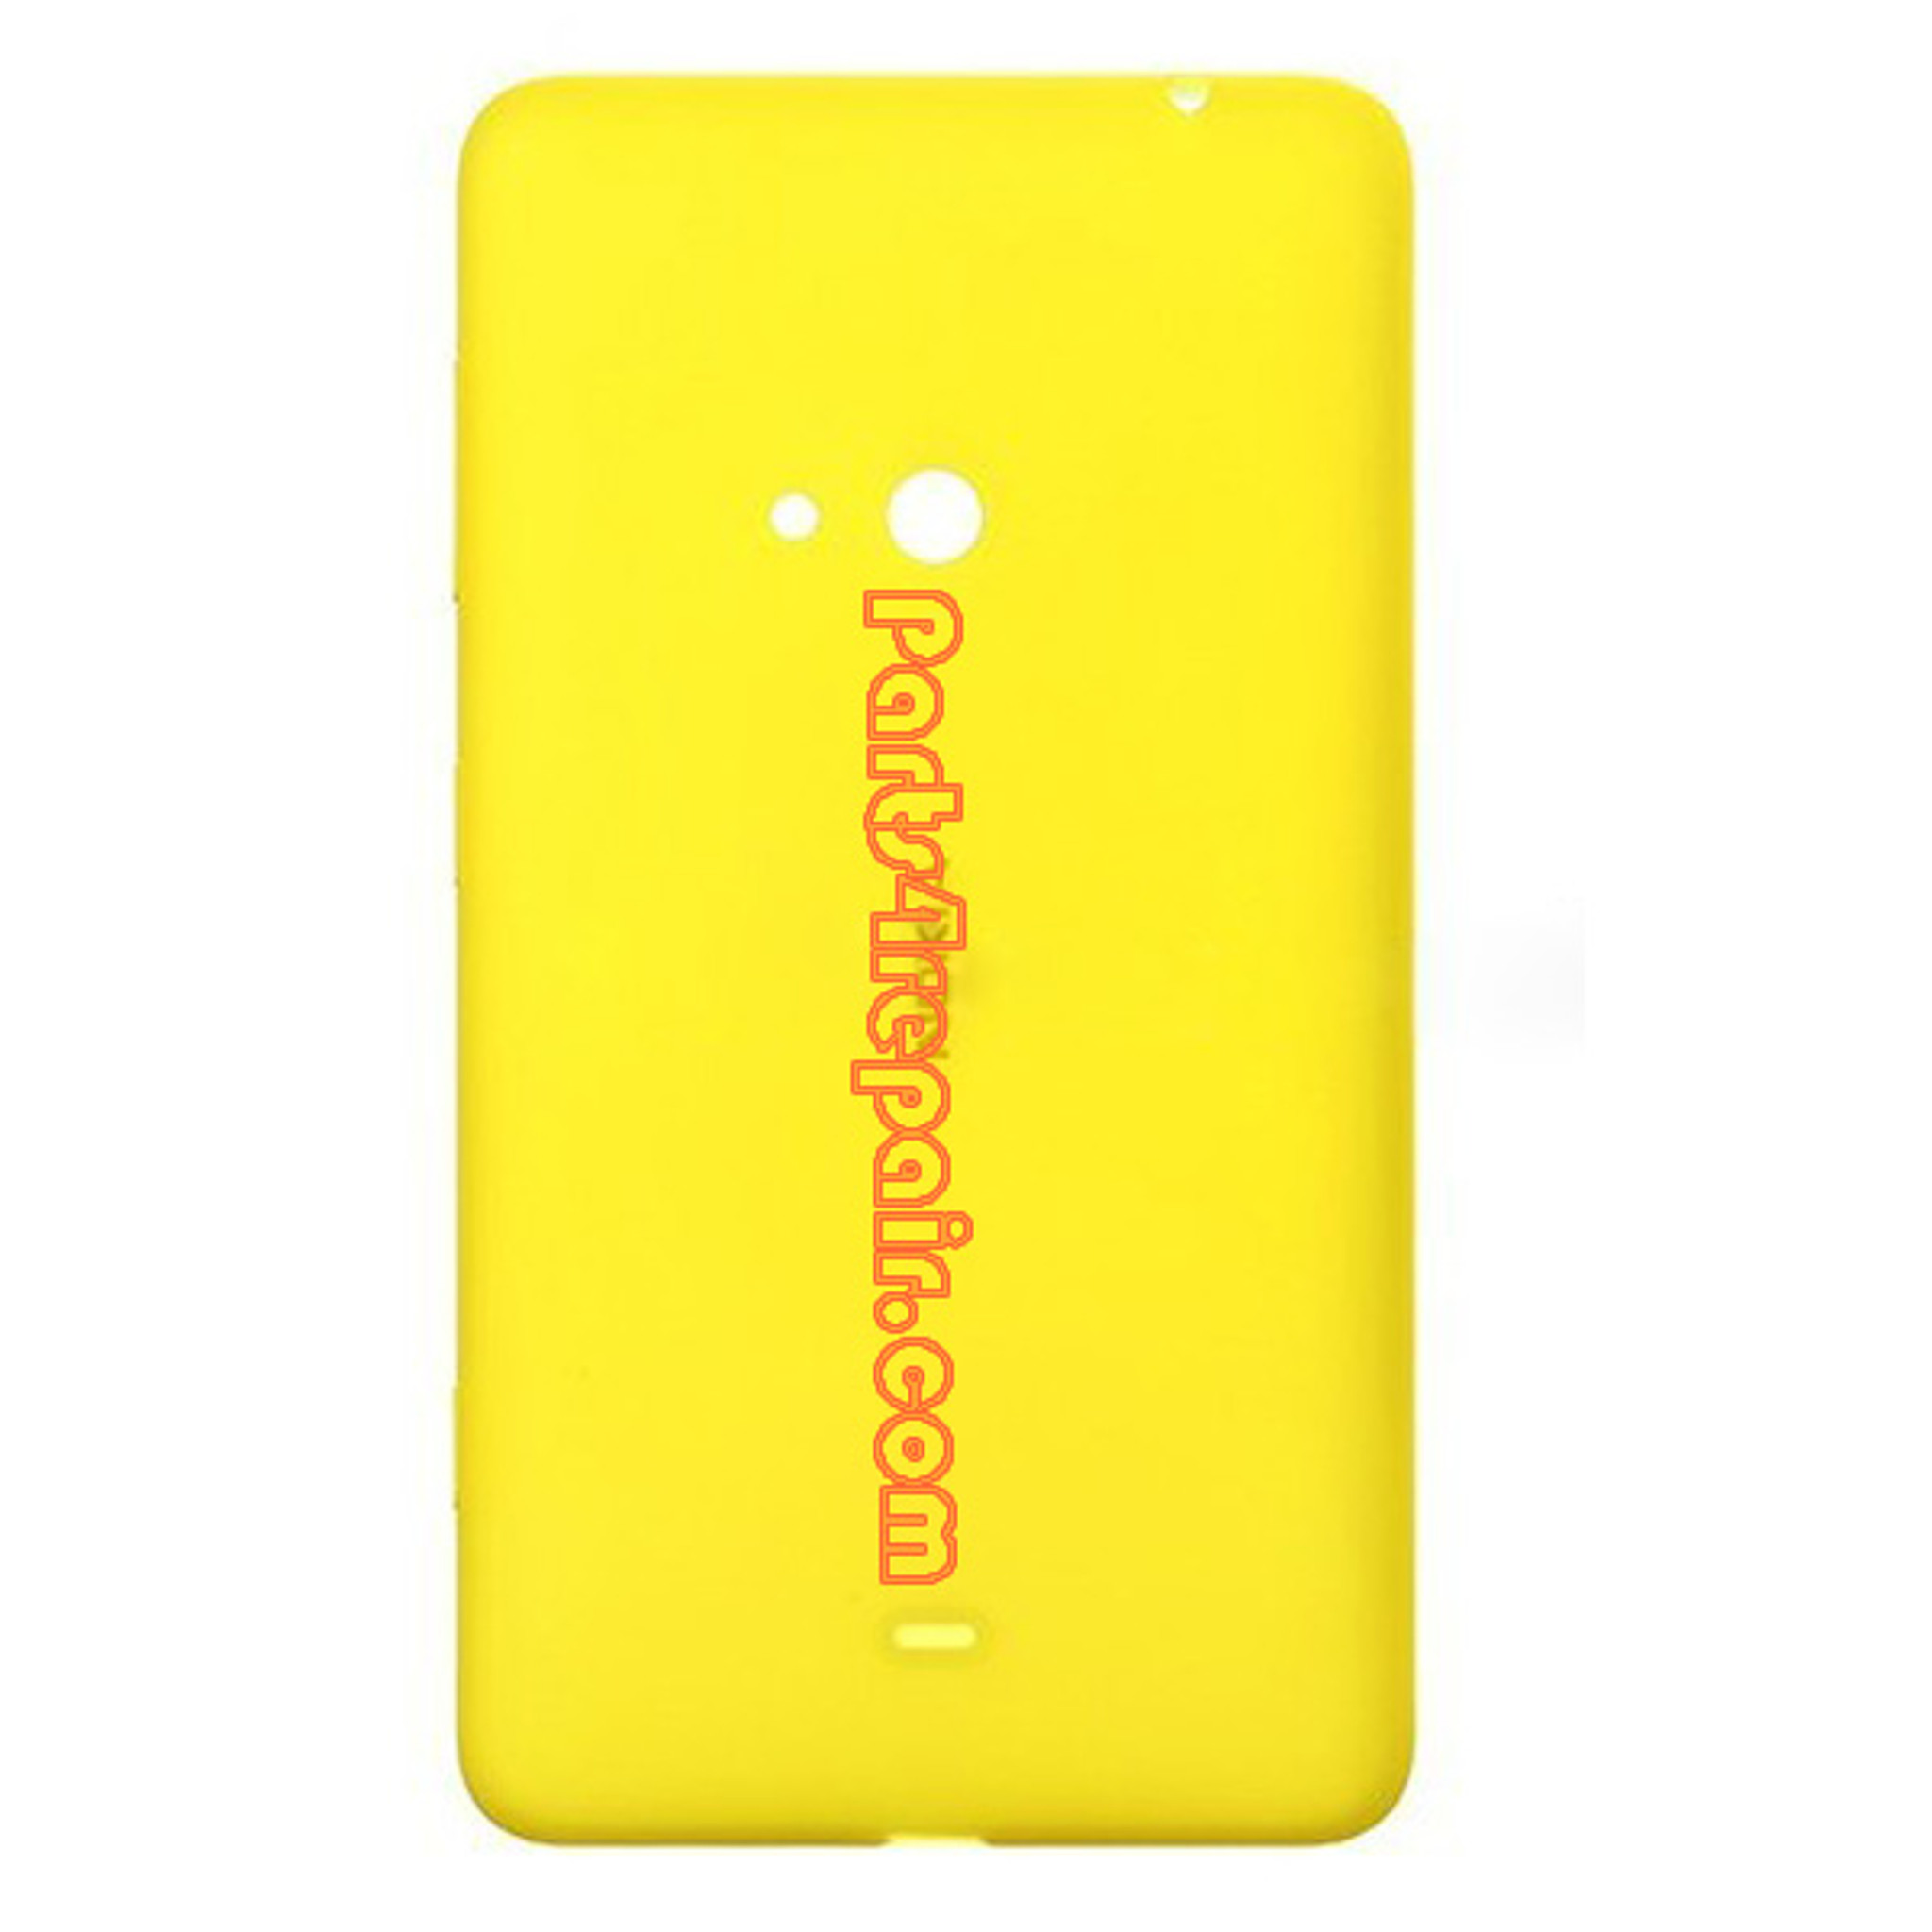 photo printer for iphone back cover for nokia lumia 625 yellow parts4repair 15849